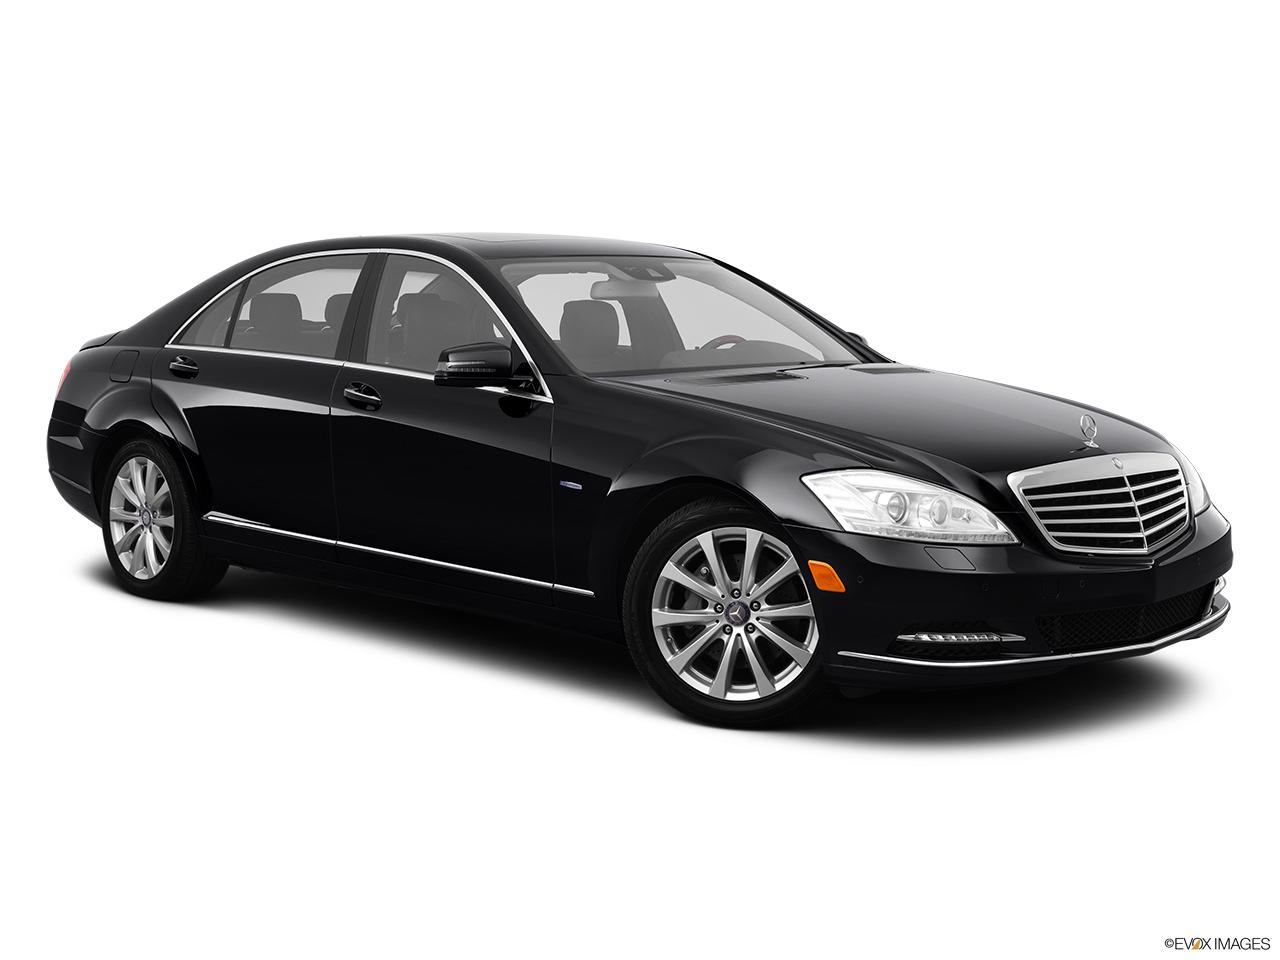 2012 Mercedes-Benz S-Class Hybrid S400 Front passenger 3/4 w/ wheels turned.